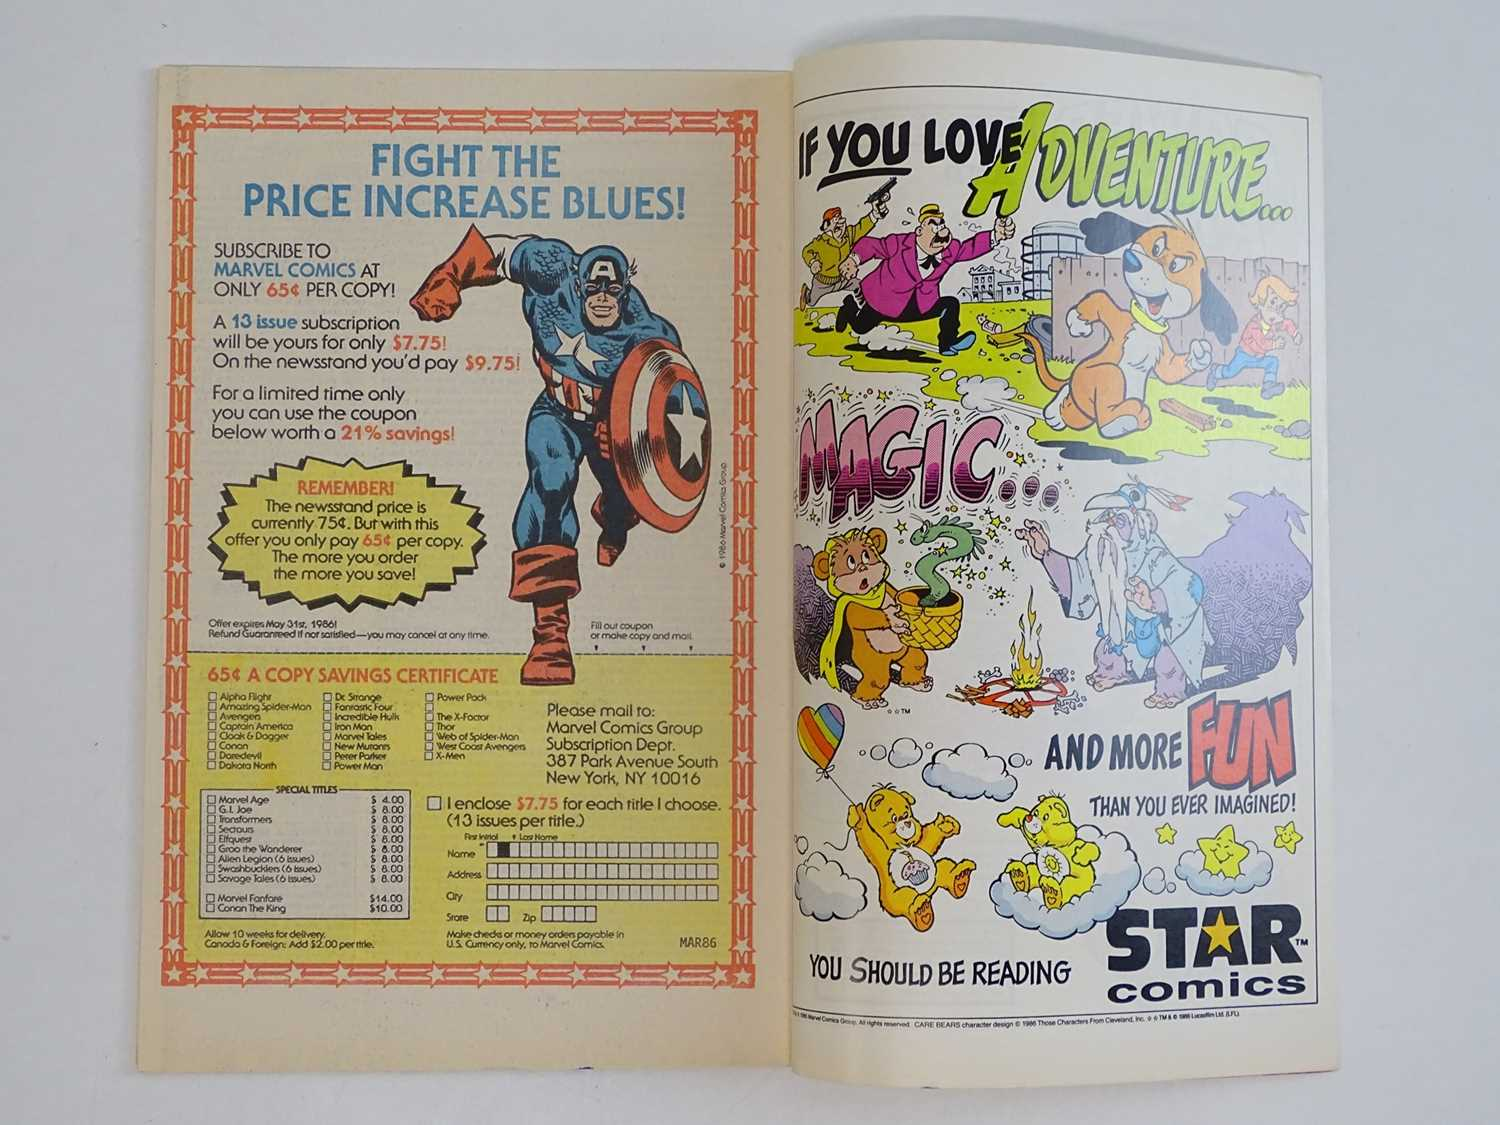 X-FACTOR #6 - (1986 - MARVEL) - Includes First (Full) Appearance of Apocalypse - Flat/Unfolded - a - Image 4 of 9